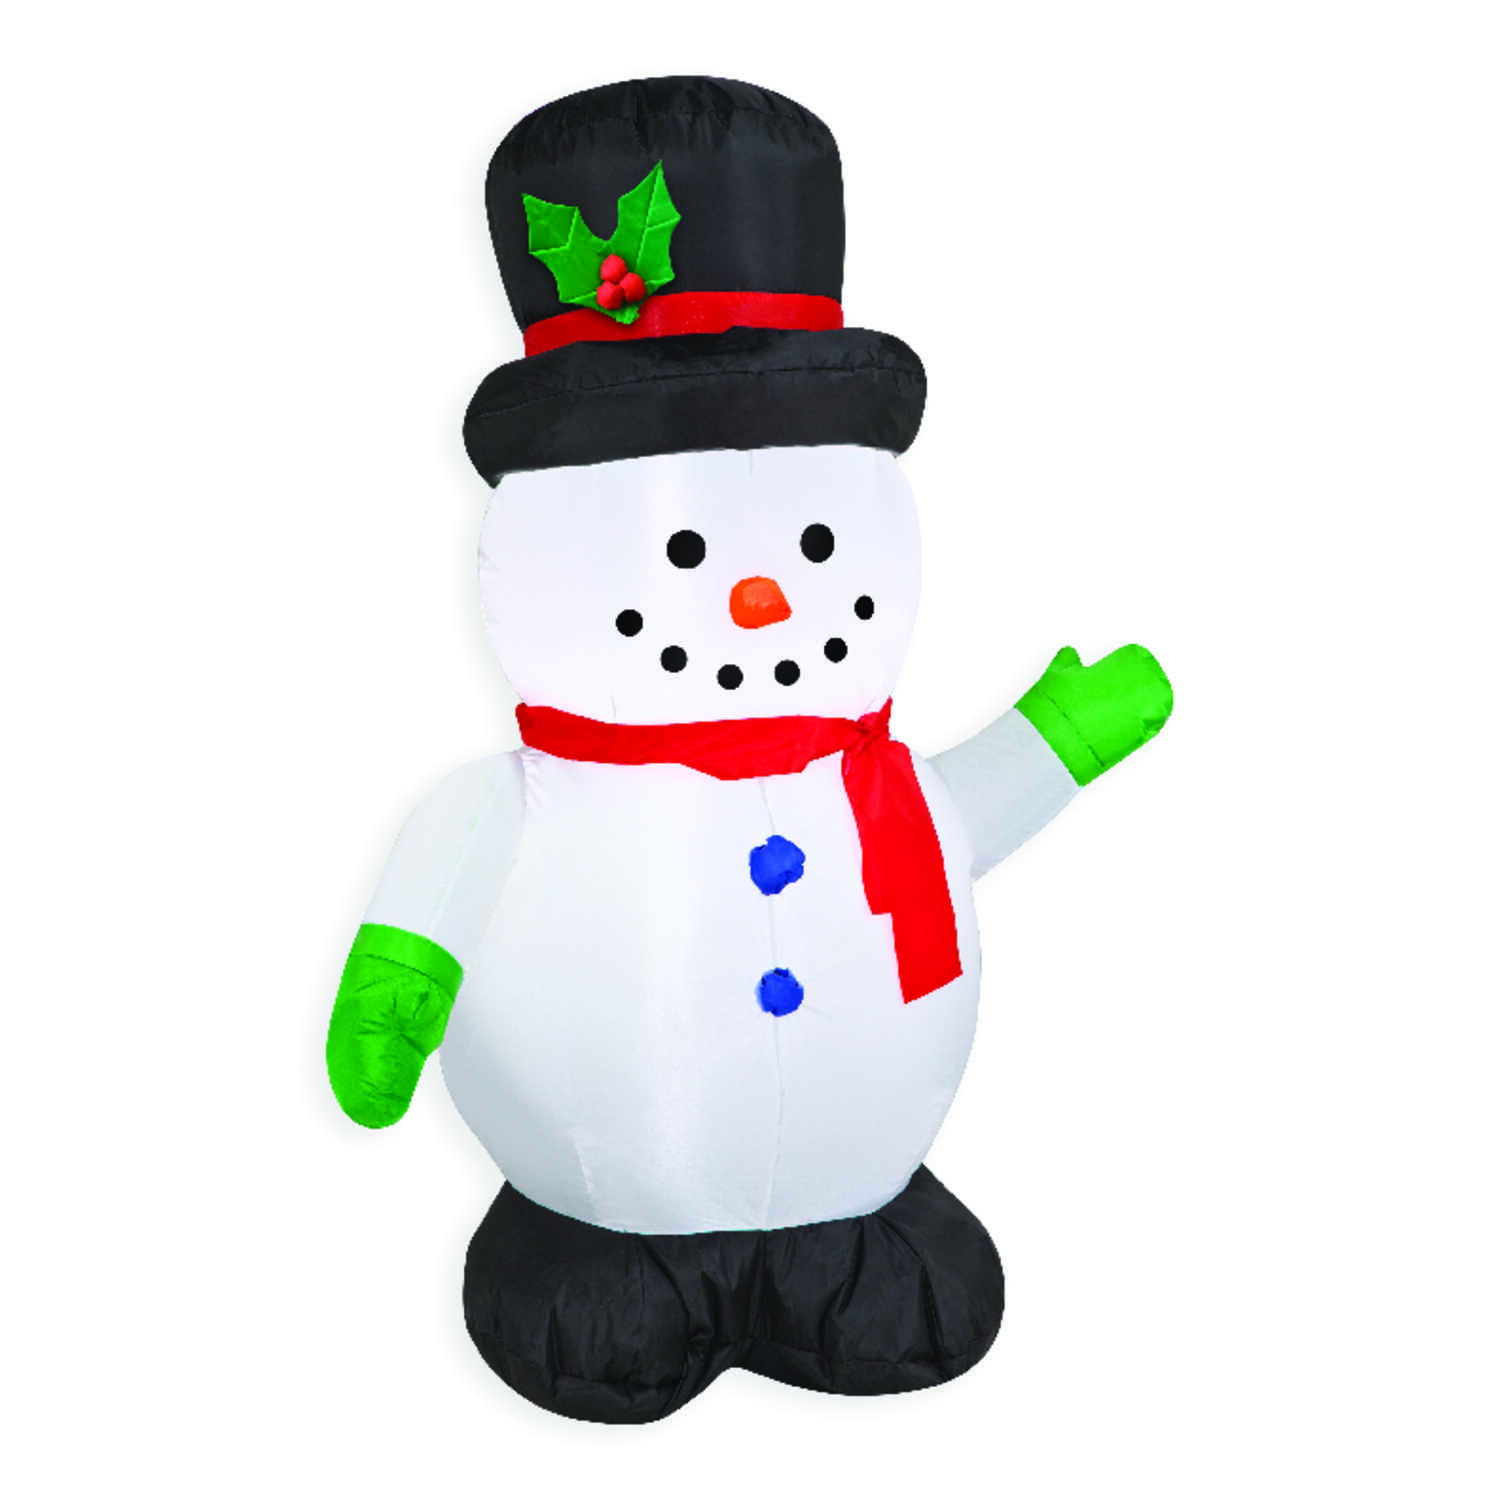 Gemmy  Airblown  Snowman  Christmas Inflatable  White  Felt  1 pk